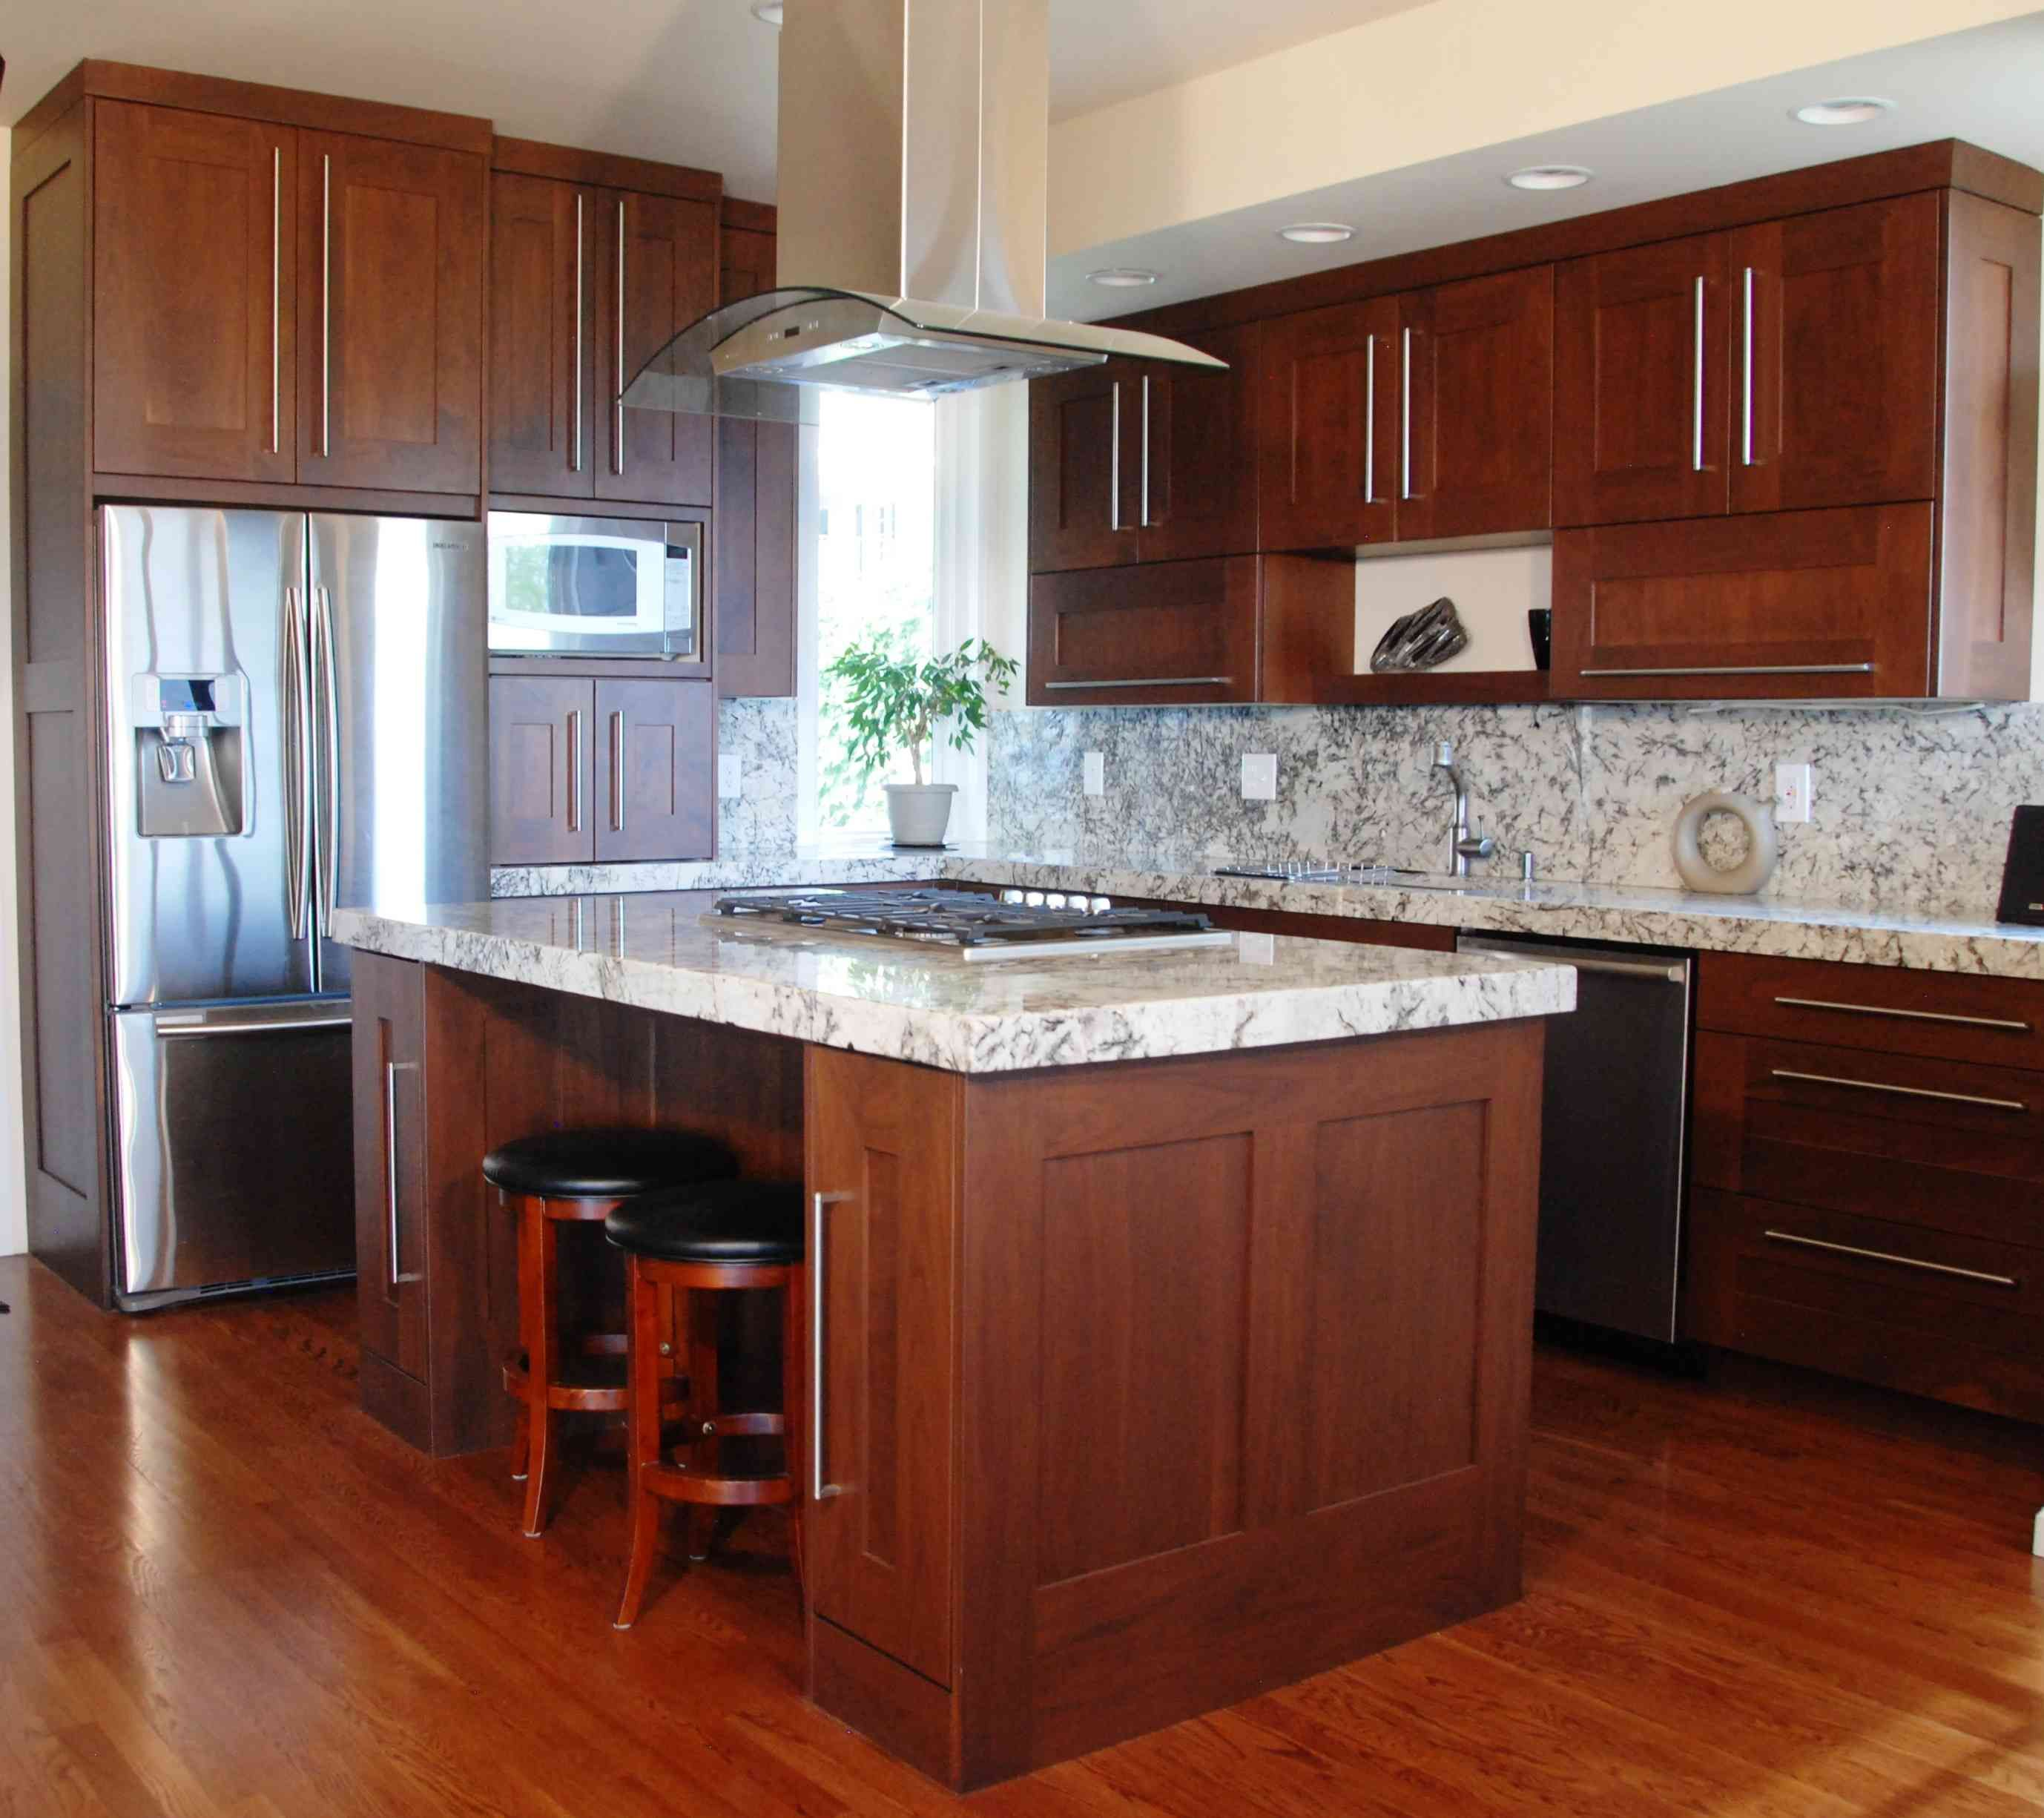 cherry wood with white granite counters and white